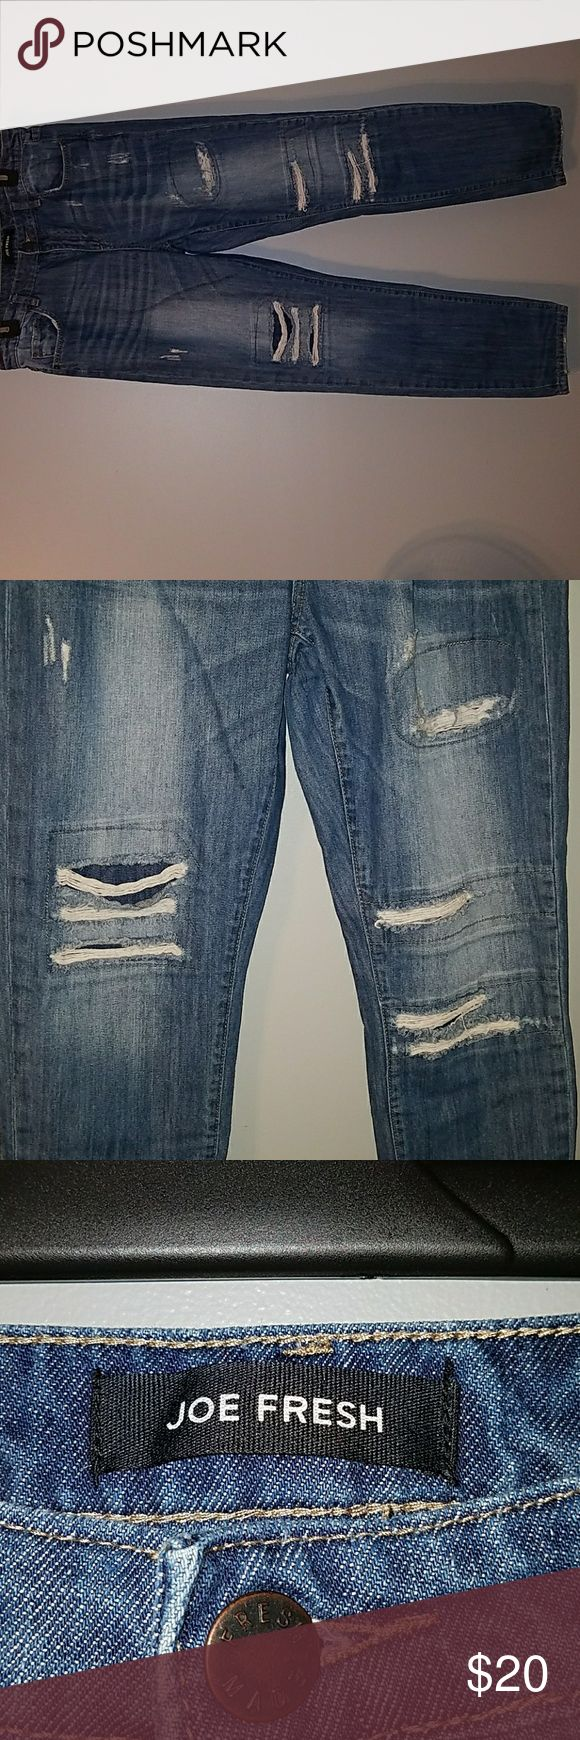 Joe Fresh Jeans 10 Boyfriend Distressed Factory distressed blue jeans, size 10 (30). No other holes, rips, or stains. No wearing in the thigh area. In excellent condition! Boyfriend style, Joe Fresh brand. Comes from pet and smoke free home. Joe Fresh Jeans Boyfriend